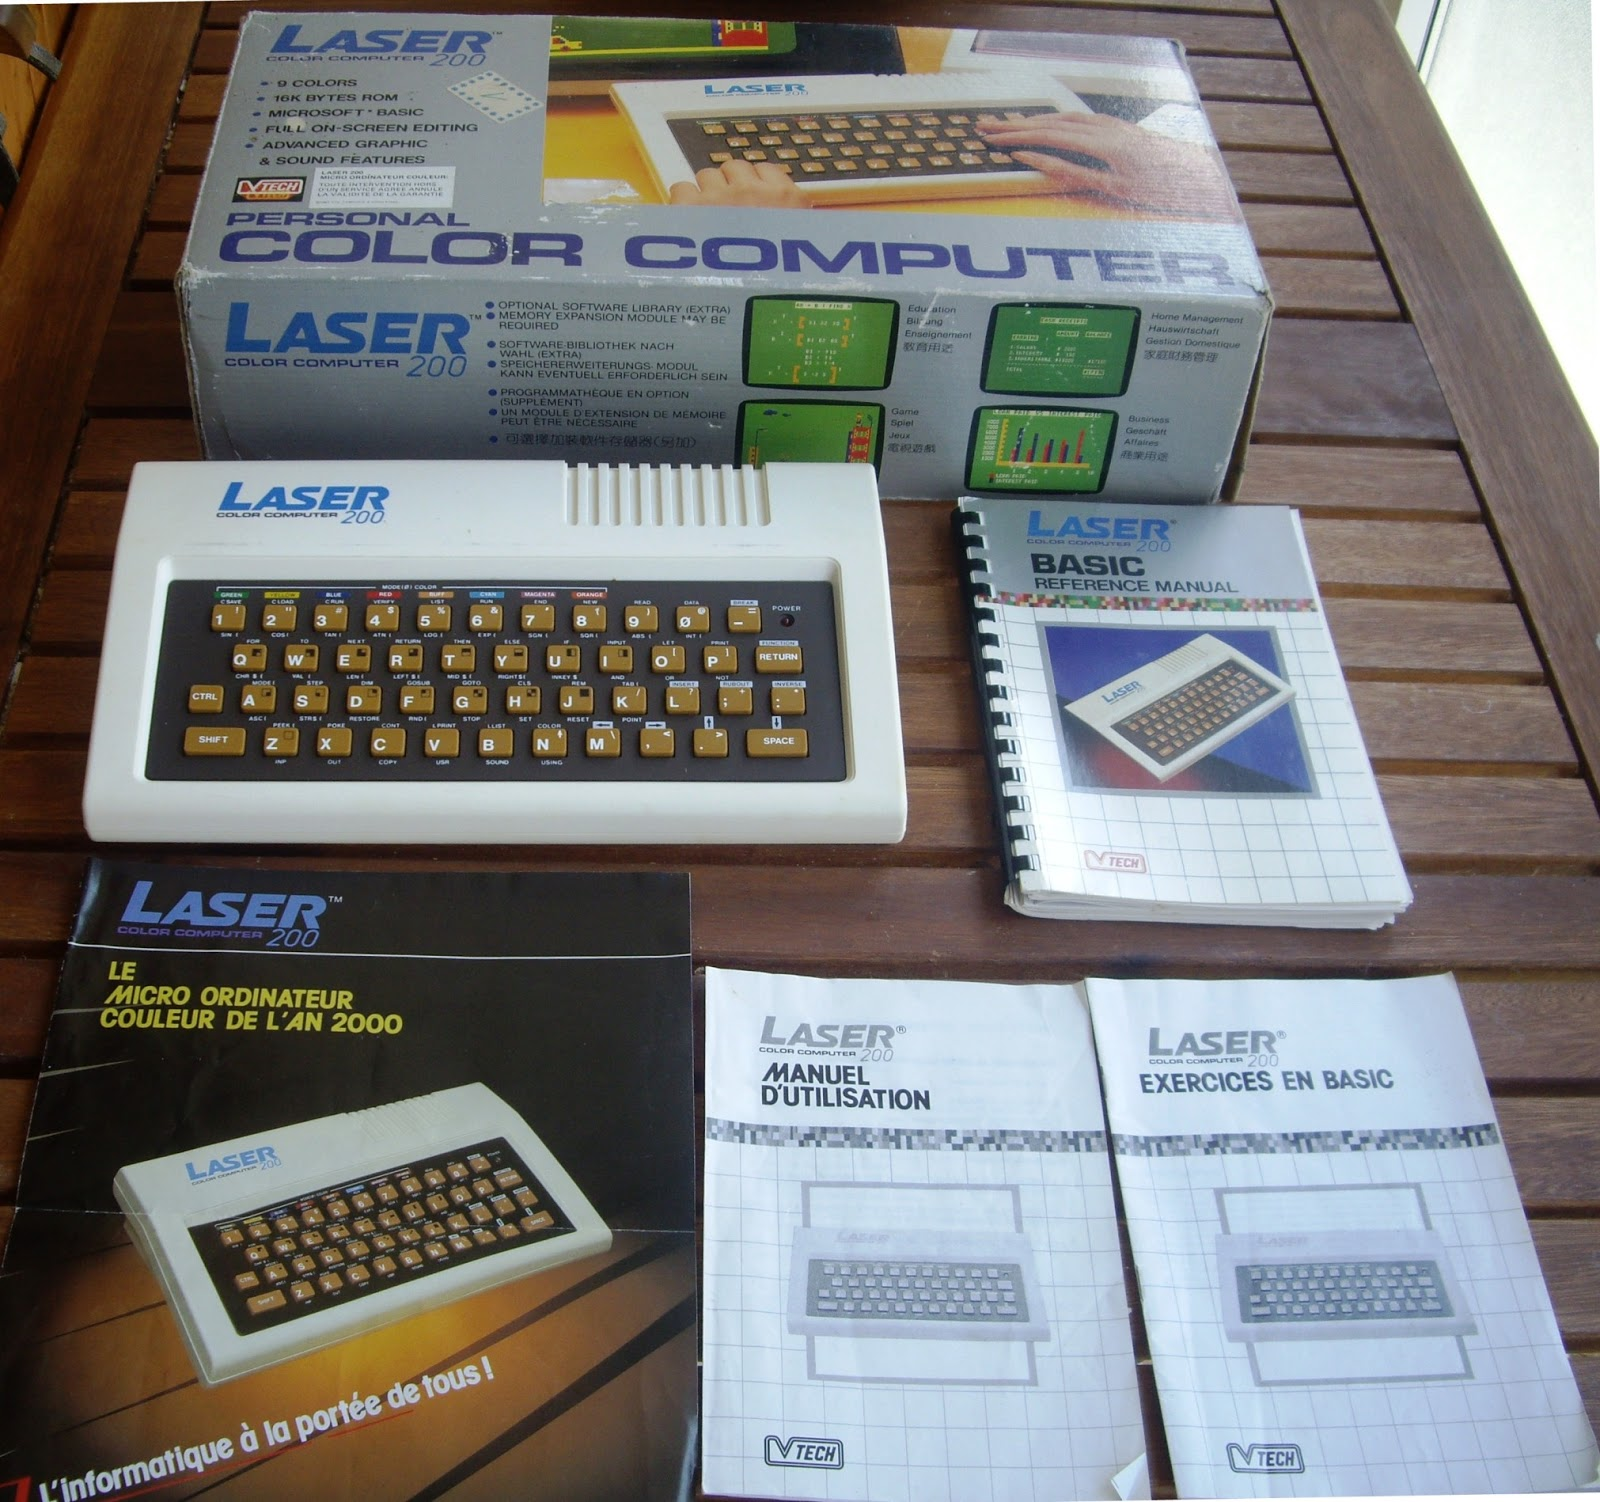 The Laser 200 computer